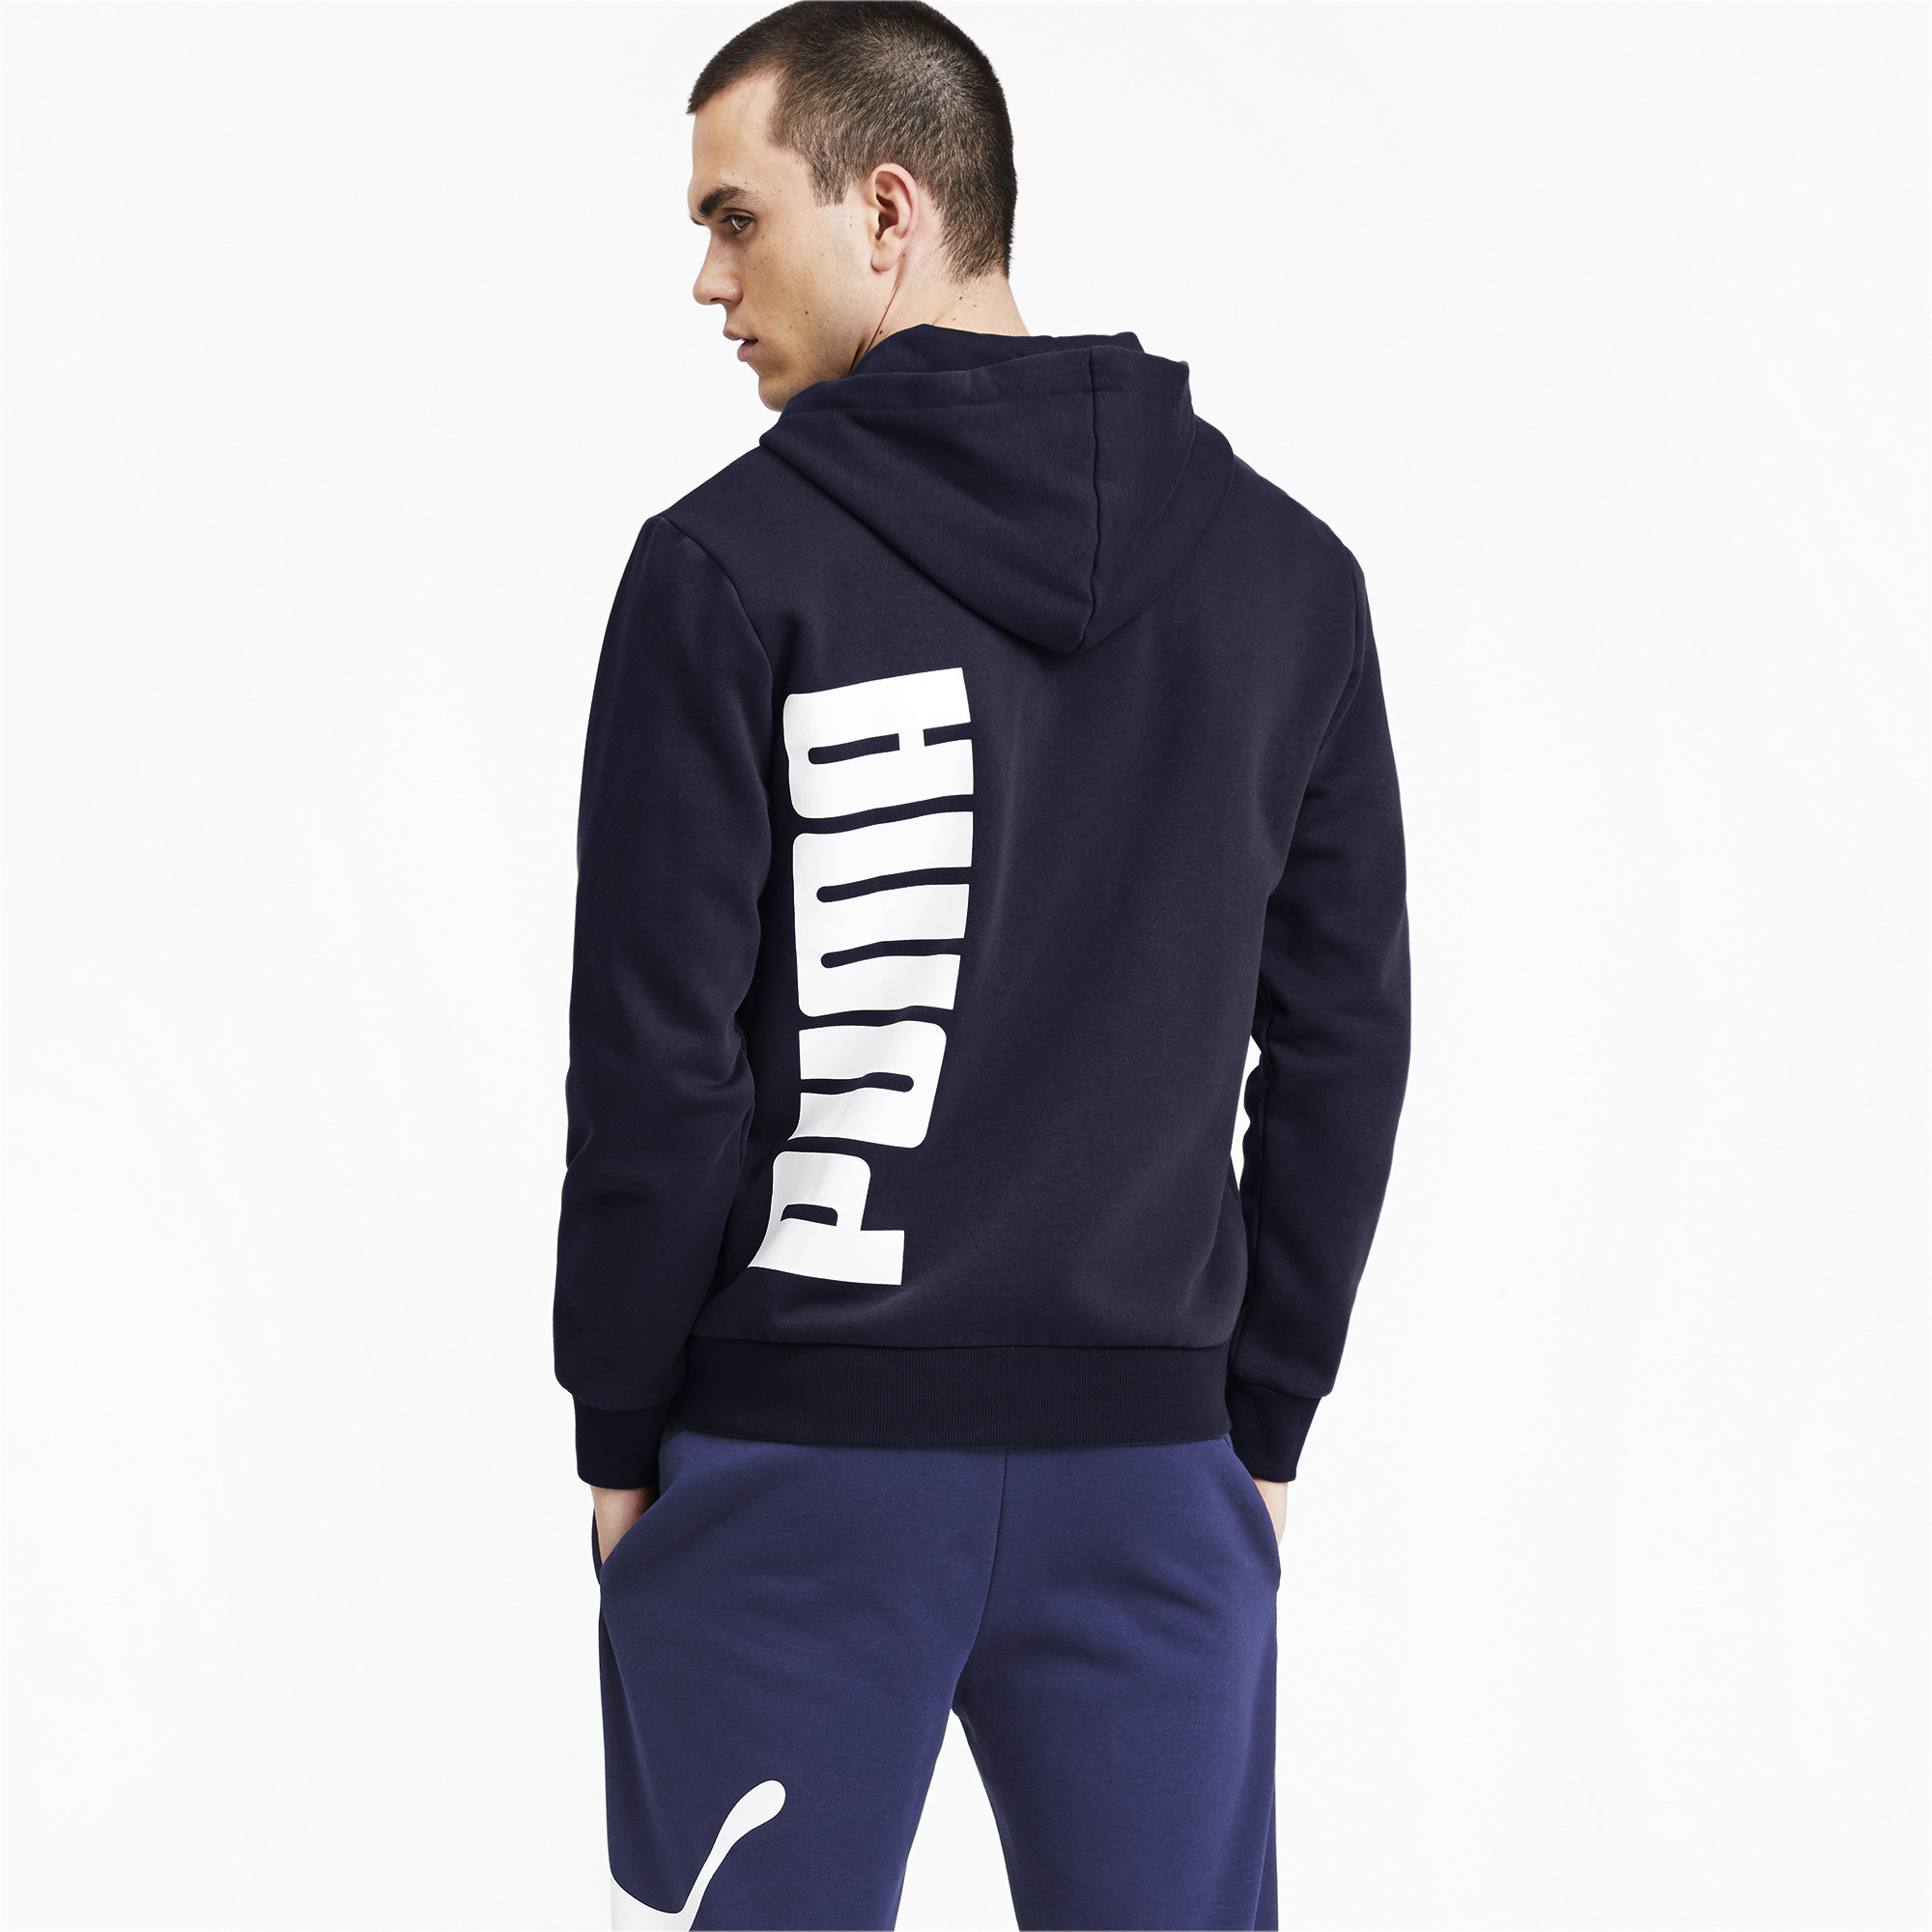 PUMA-Big-Logo-Men-039-s-Full-Zip-Hoodie-Men-Sweat-Basics thumbnail 5